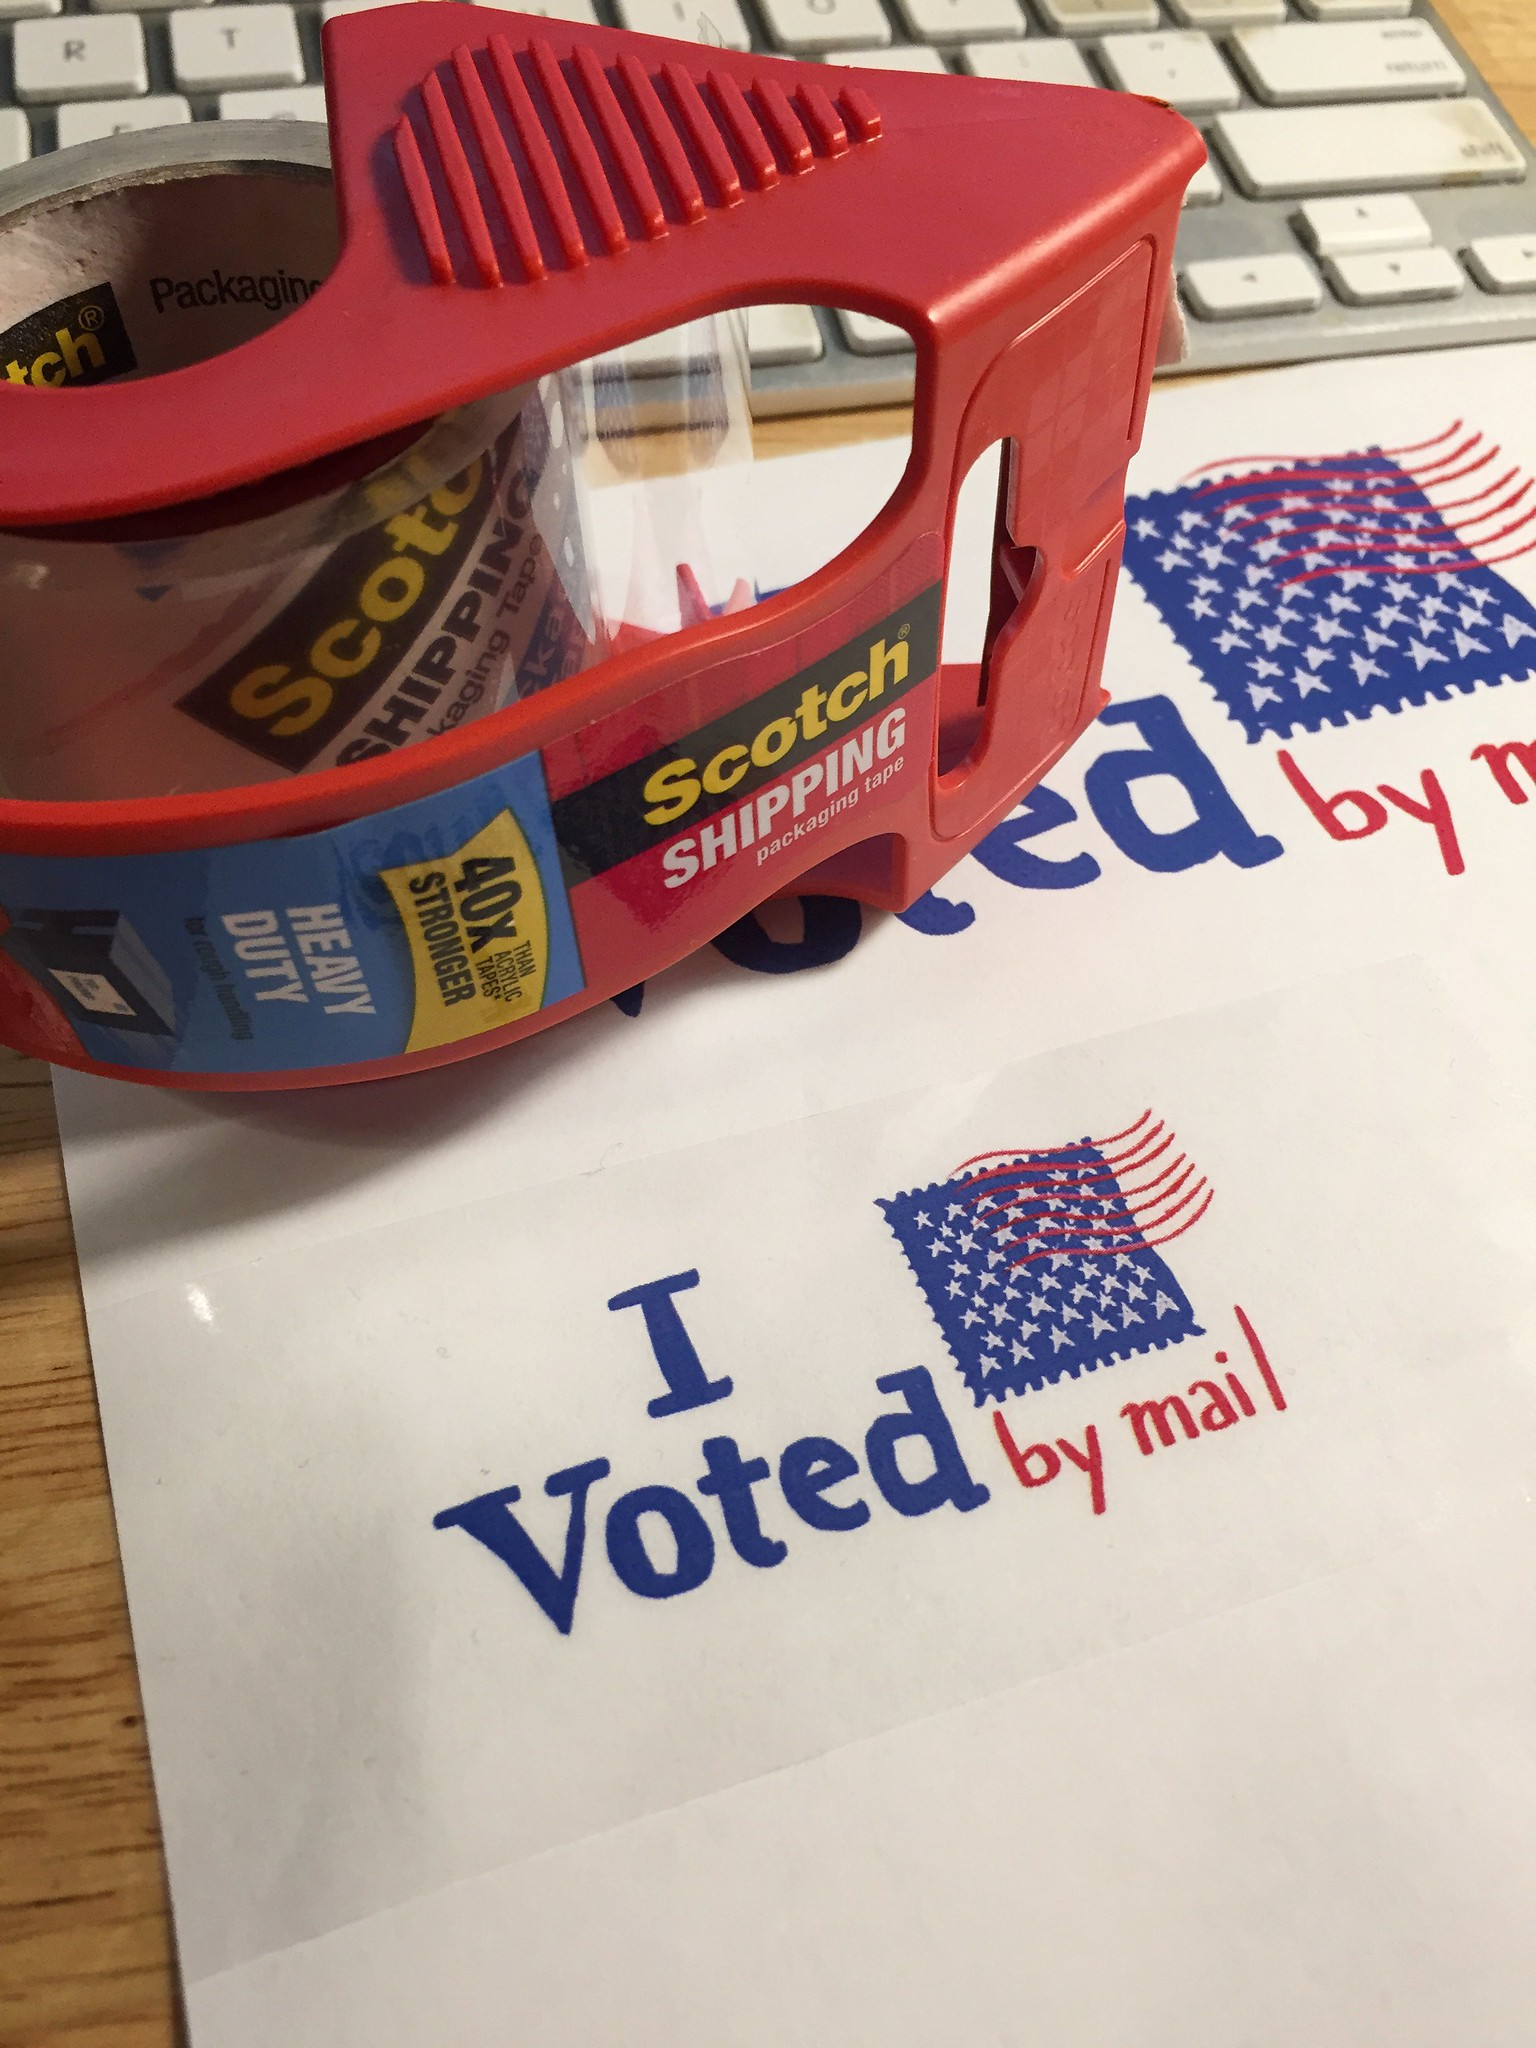 DIY I voted by mail